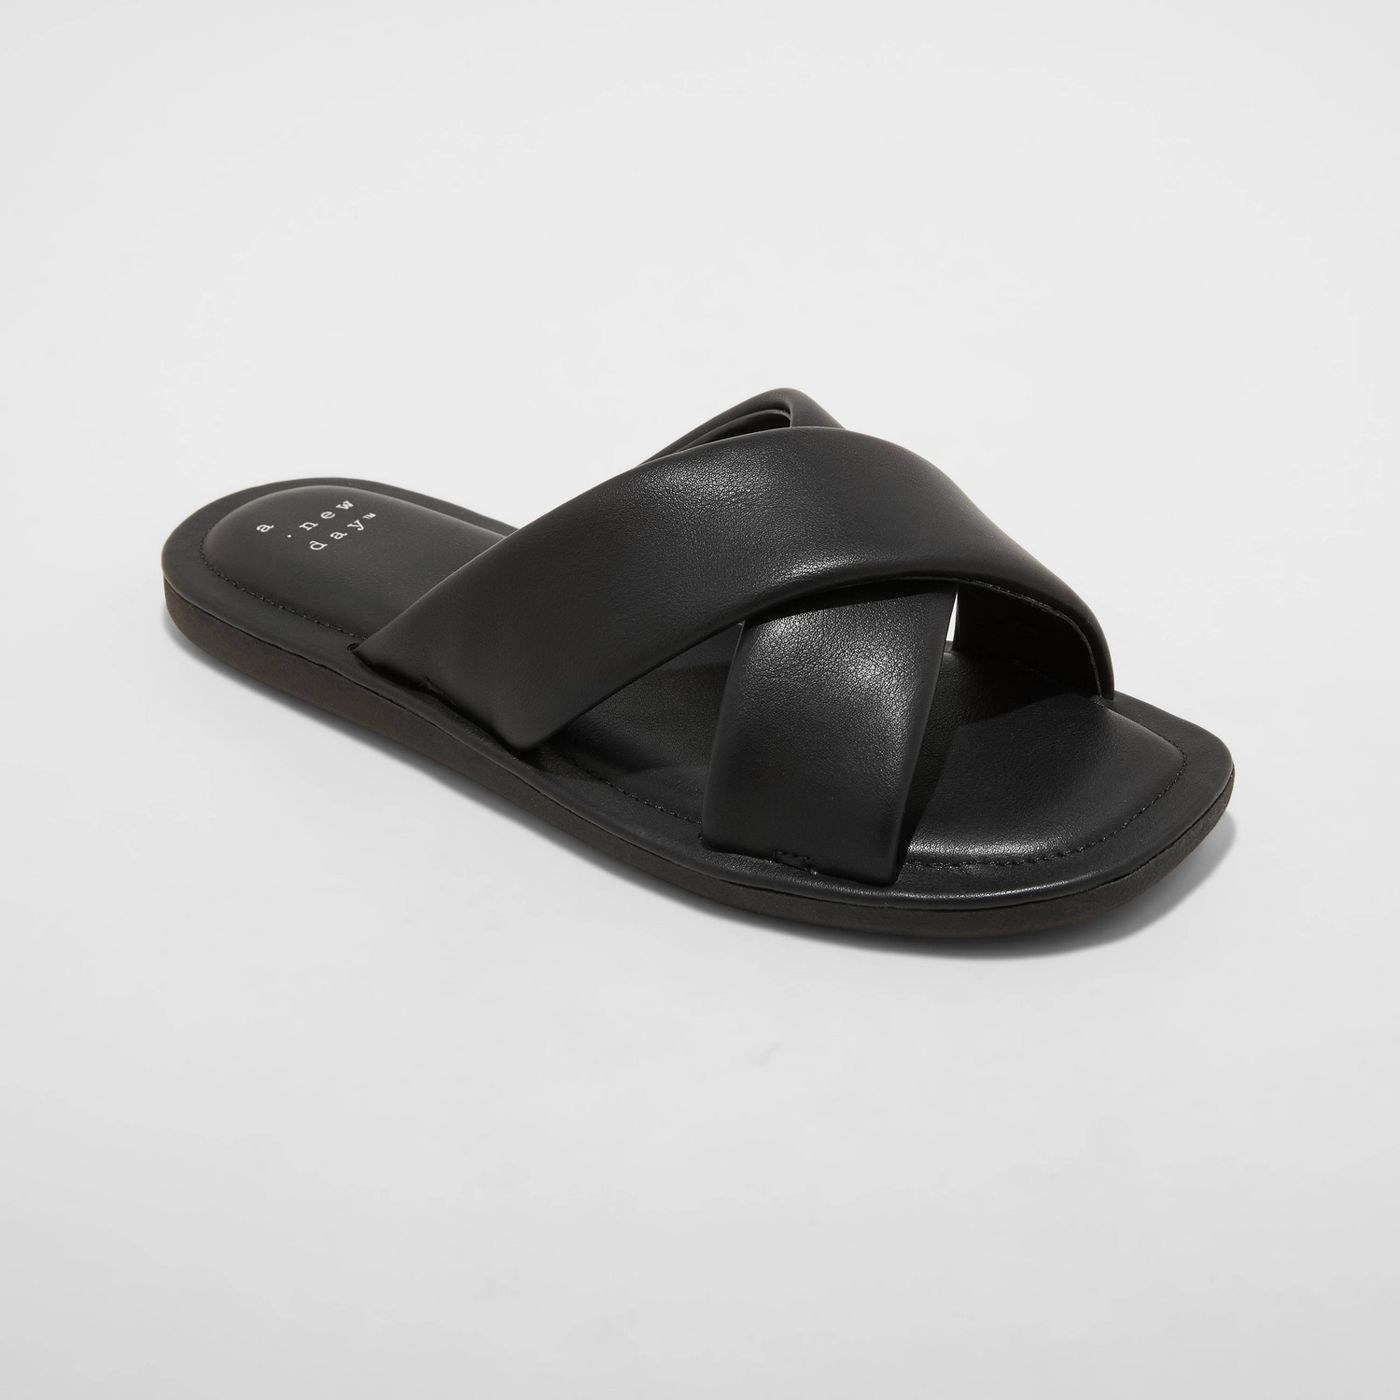 Black leather slides with black puffy sole, black stitching around the show